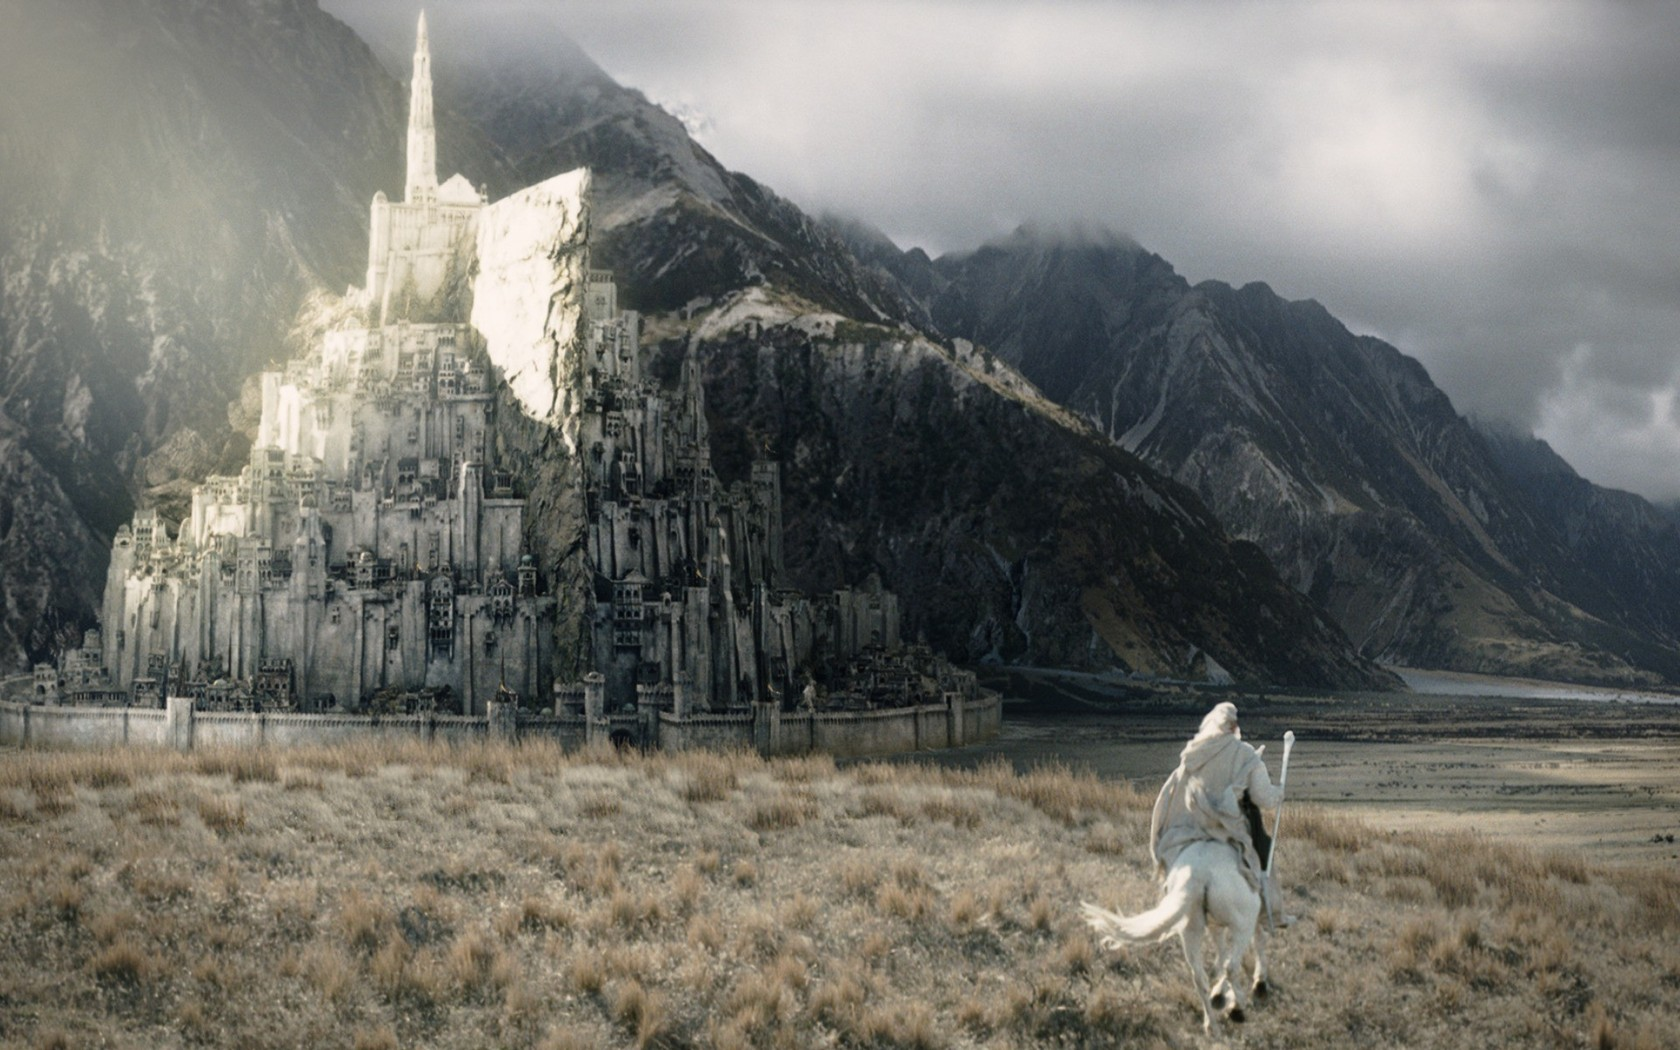 A real-life 'Lord of the Rings' city could soon be a thing